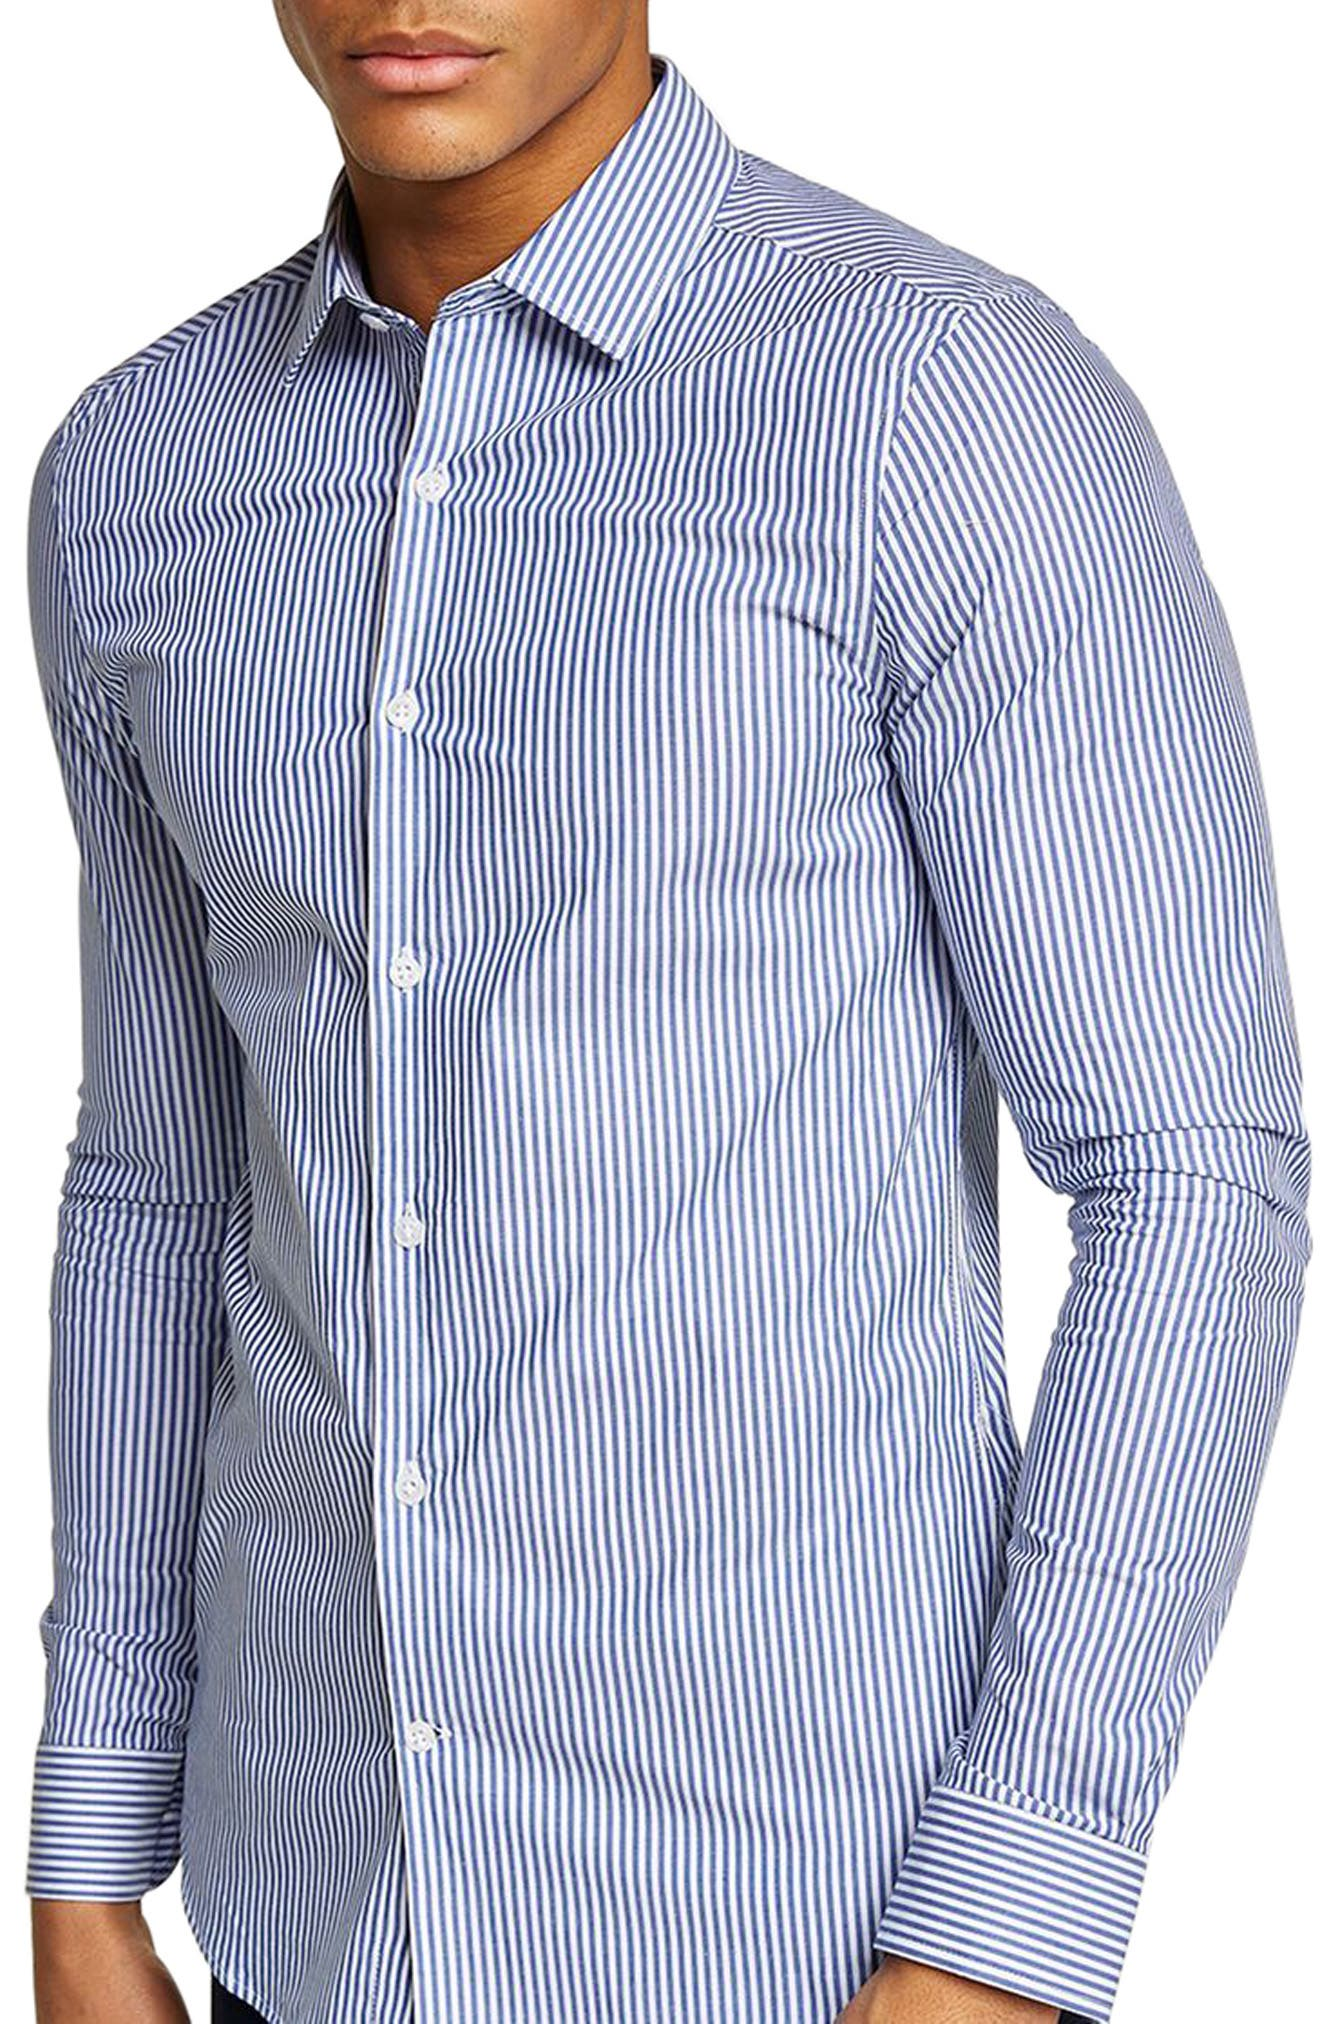 Muscle Fit Stripe Shirt,                             Main thumbnail 1, color,                             Blue Multi